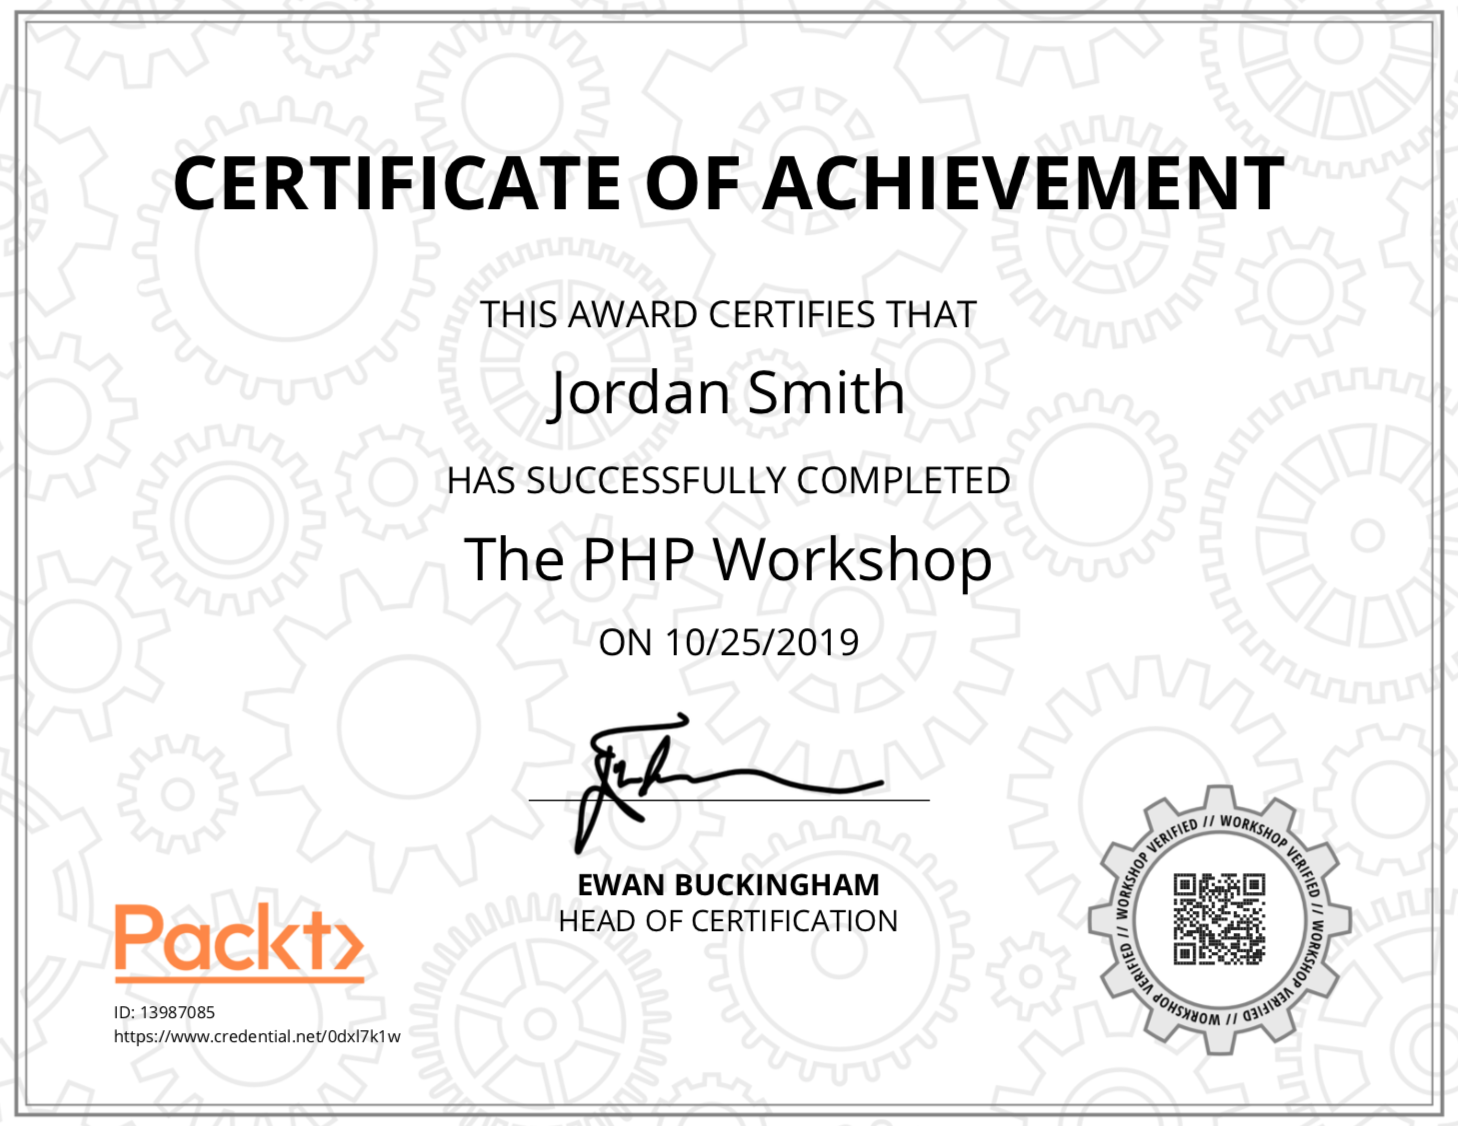 A copy of a certificate for The PHP Workshop